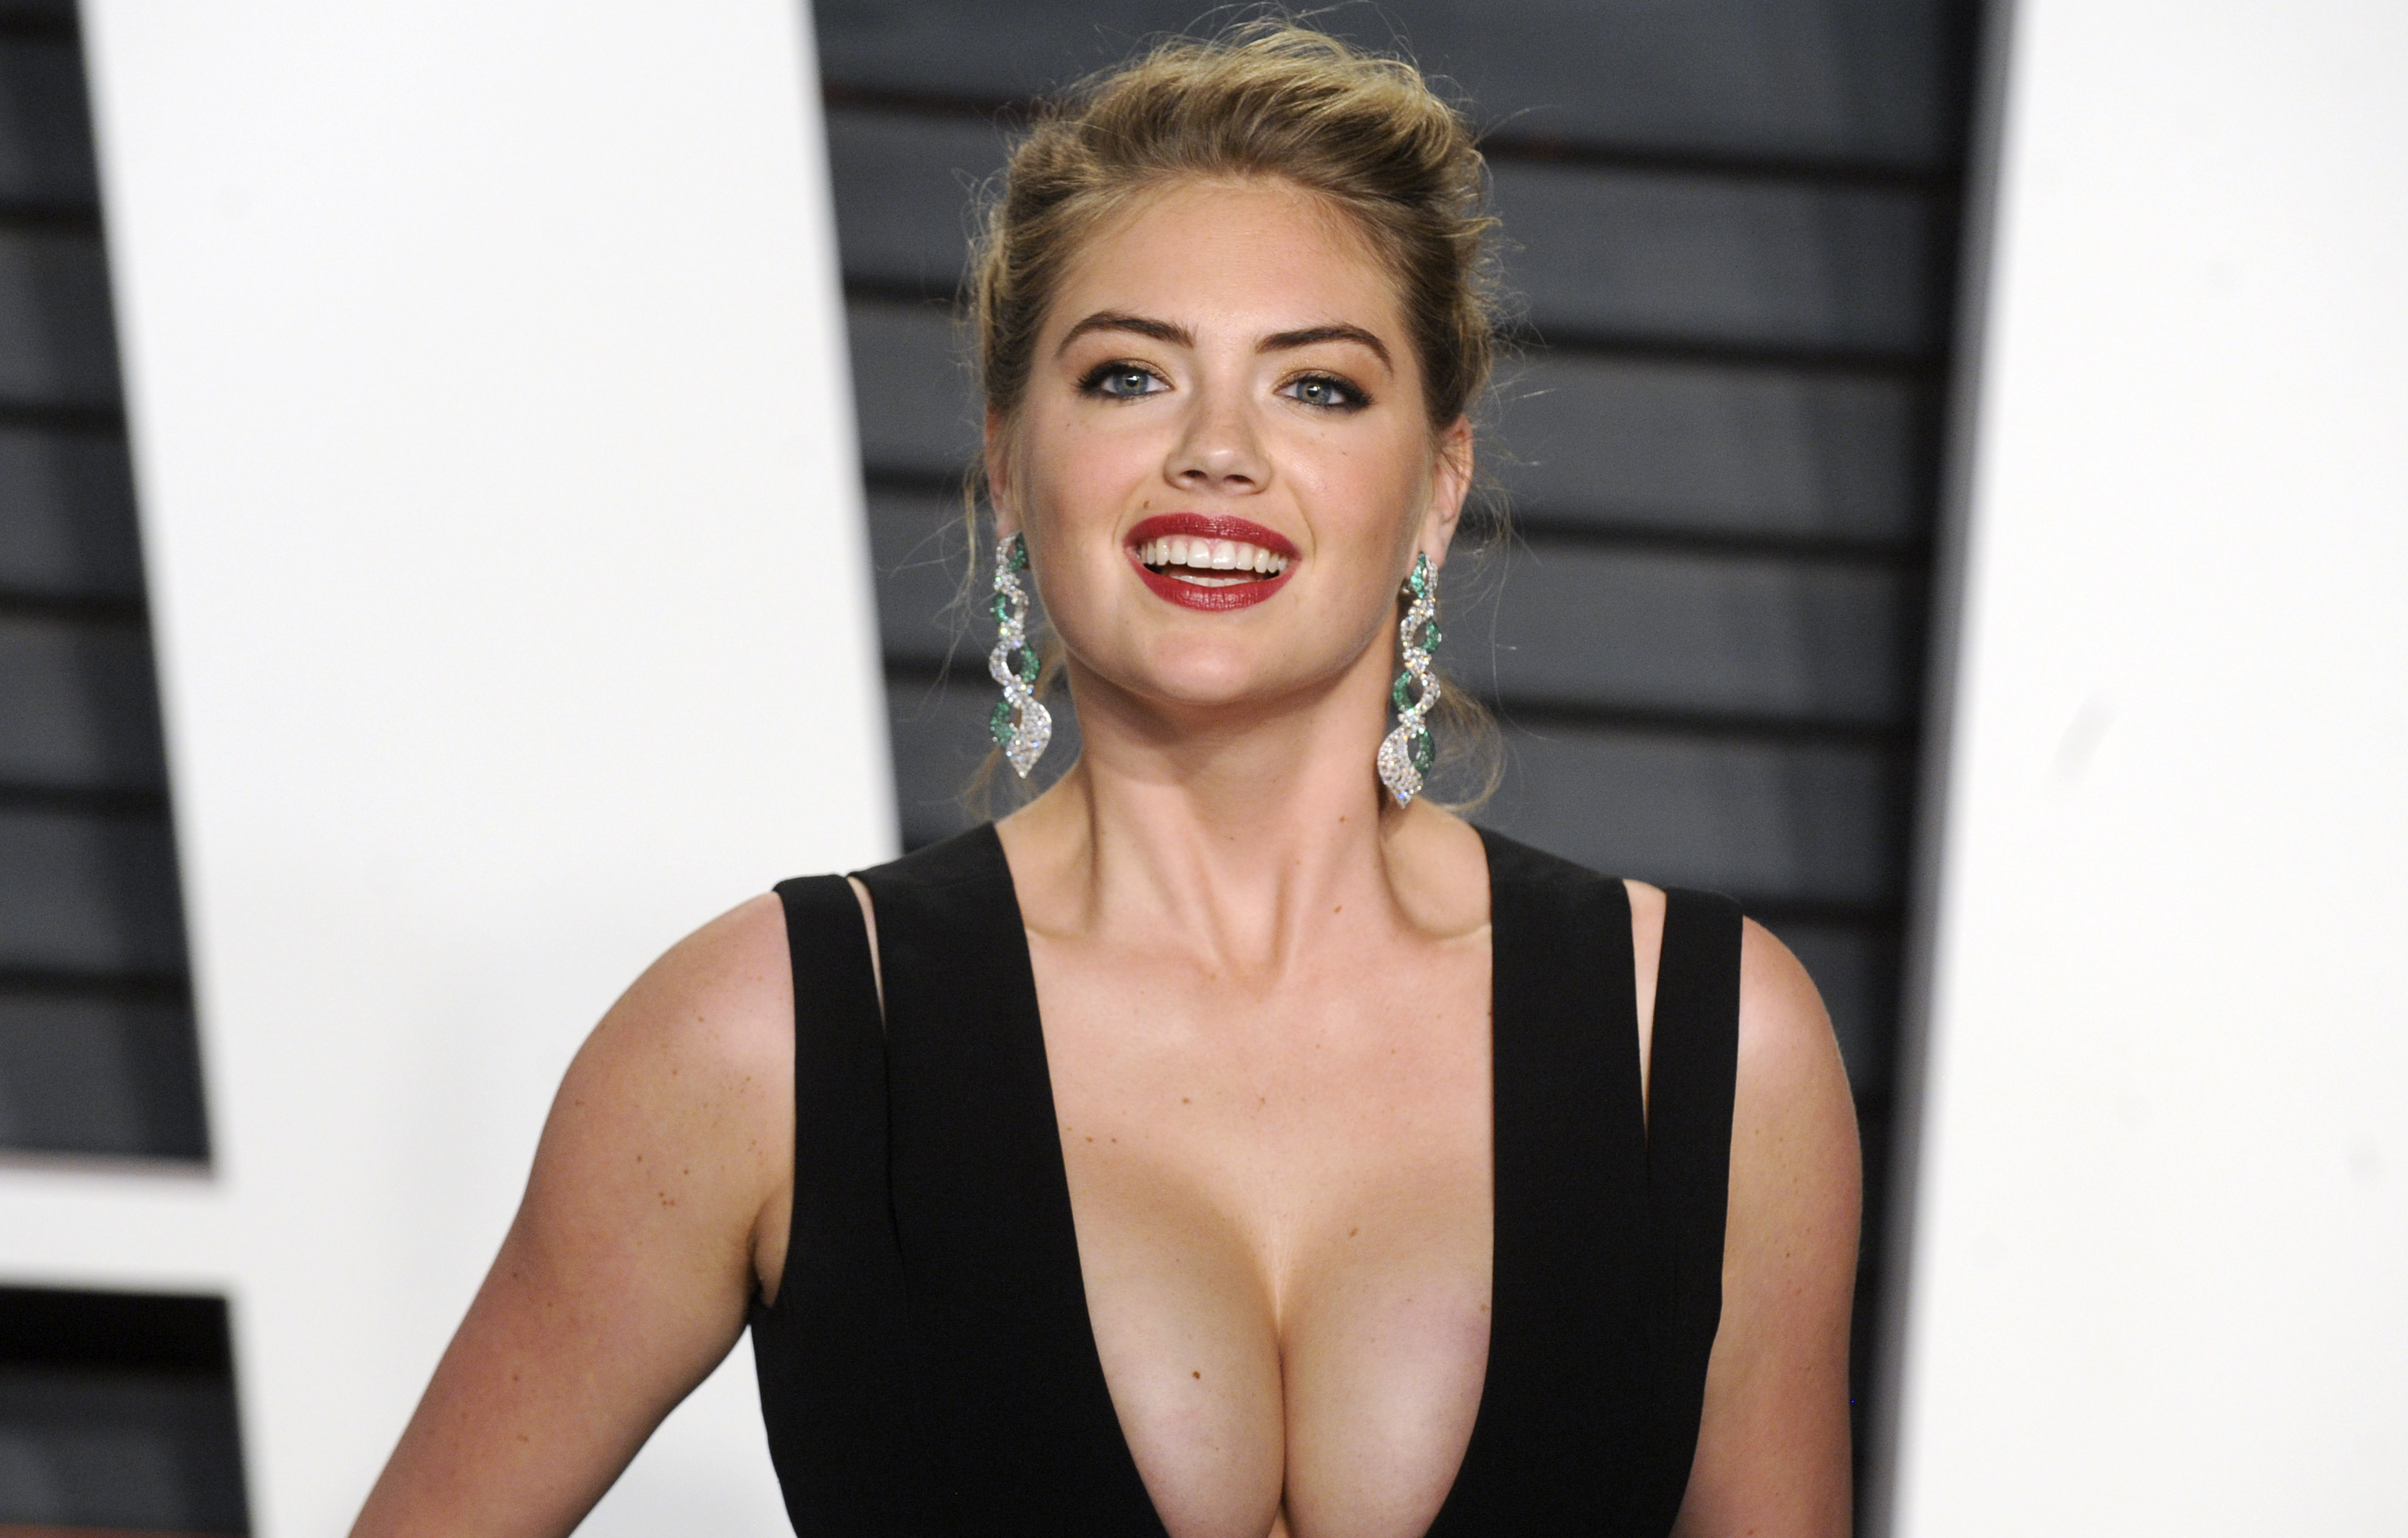 Kate Upton Covers 'Sports Illustrated' for 3rd Time, Shares Body-Positive Message